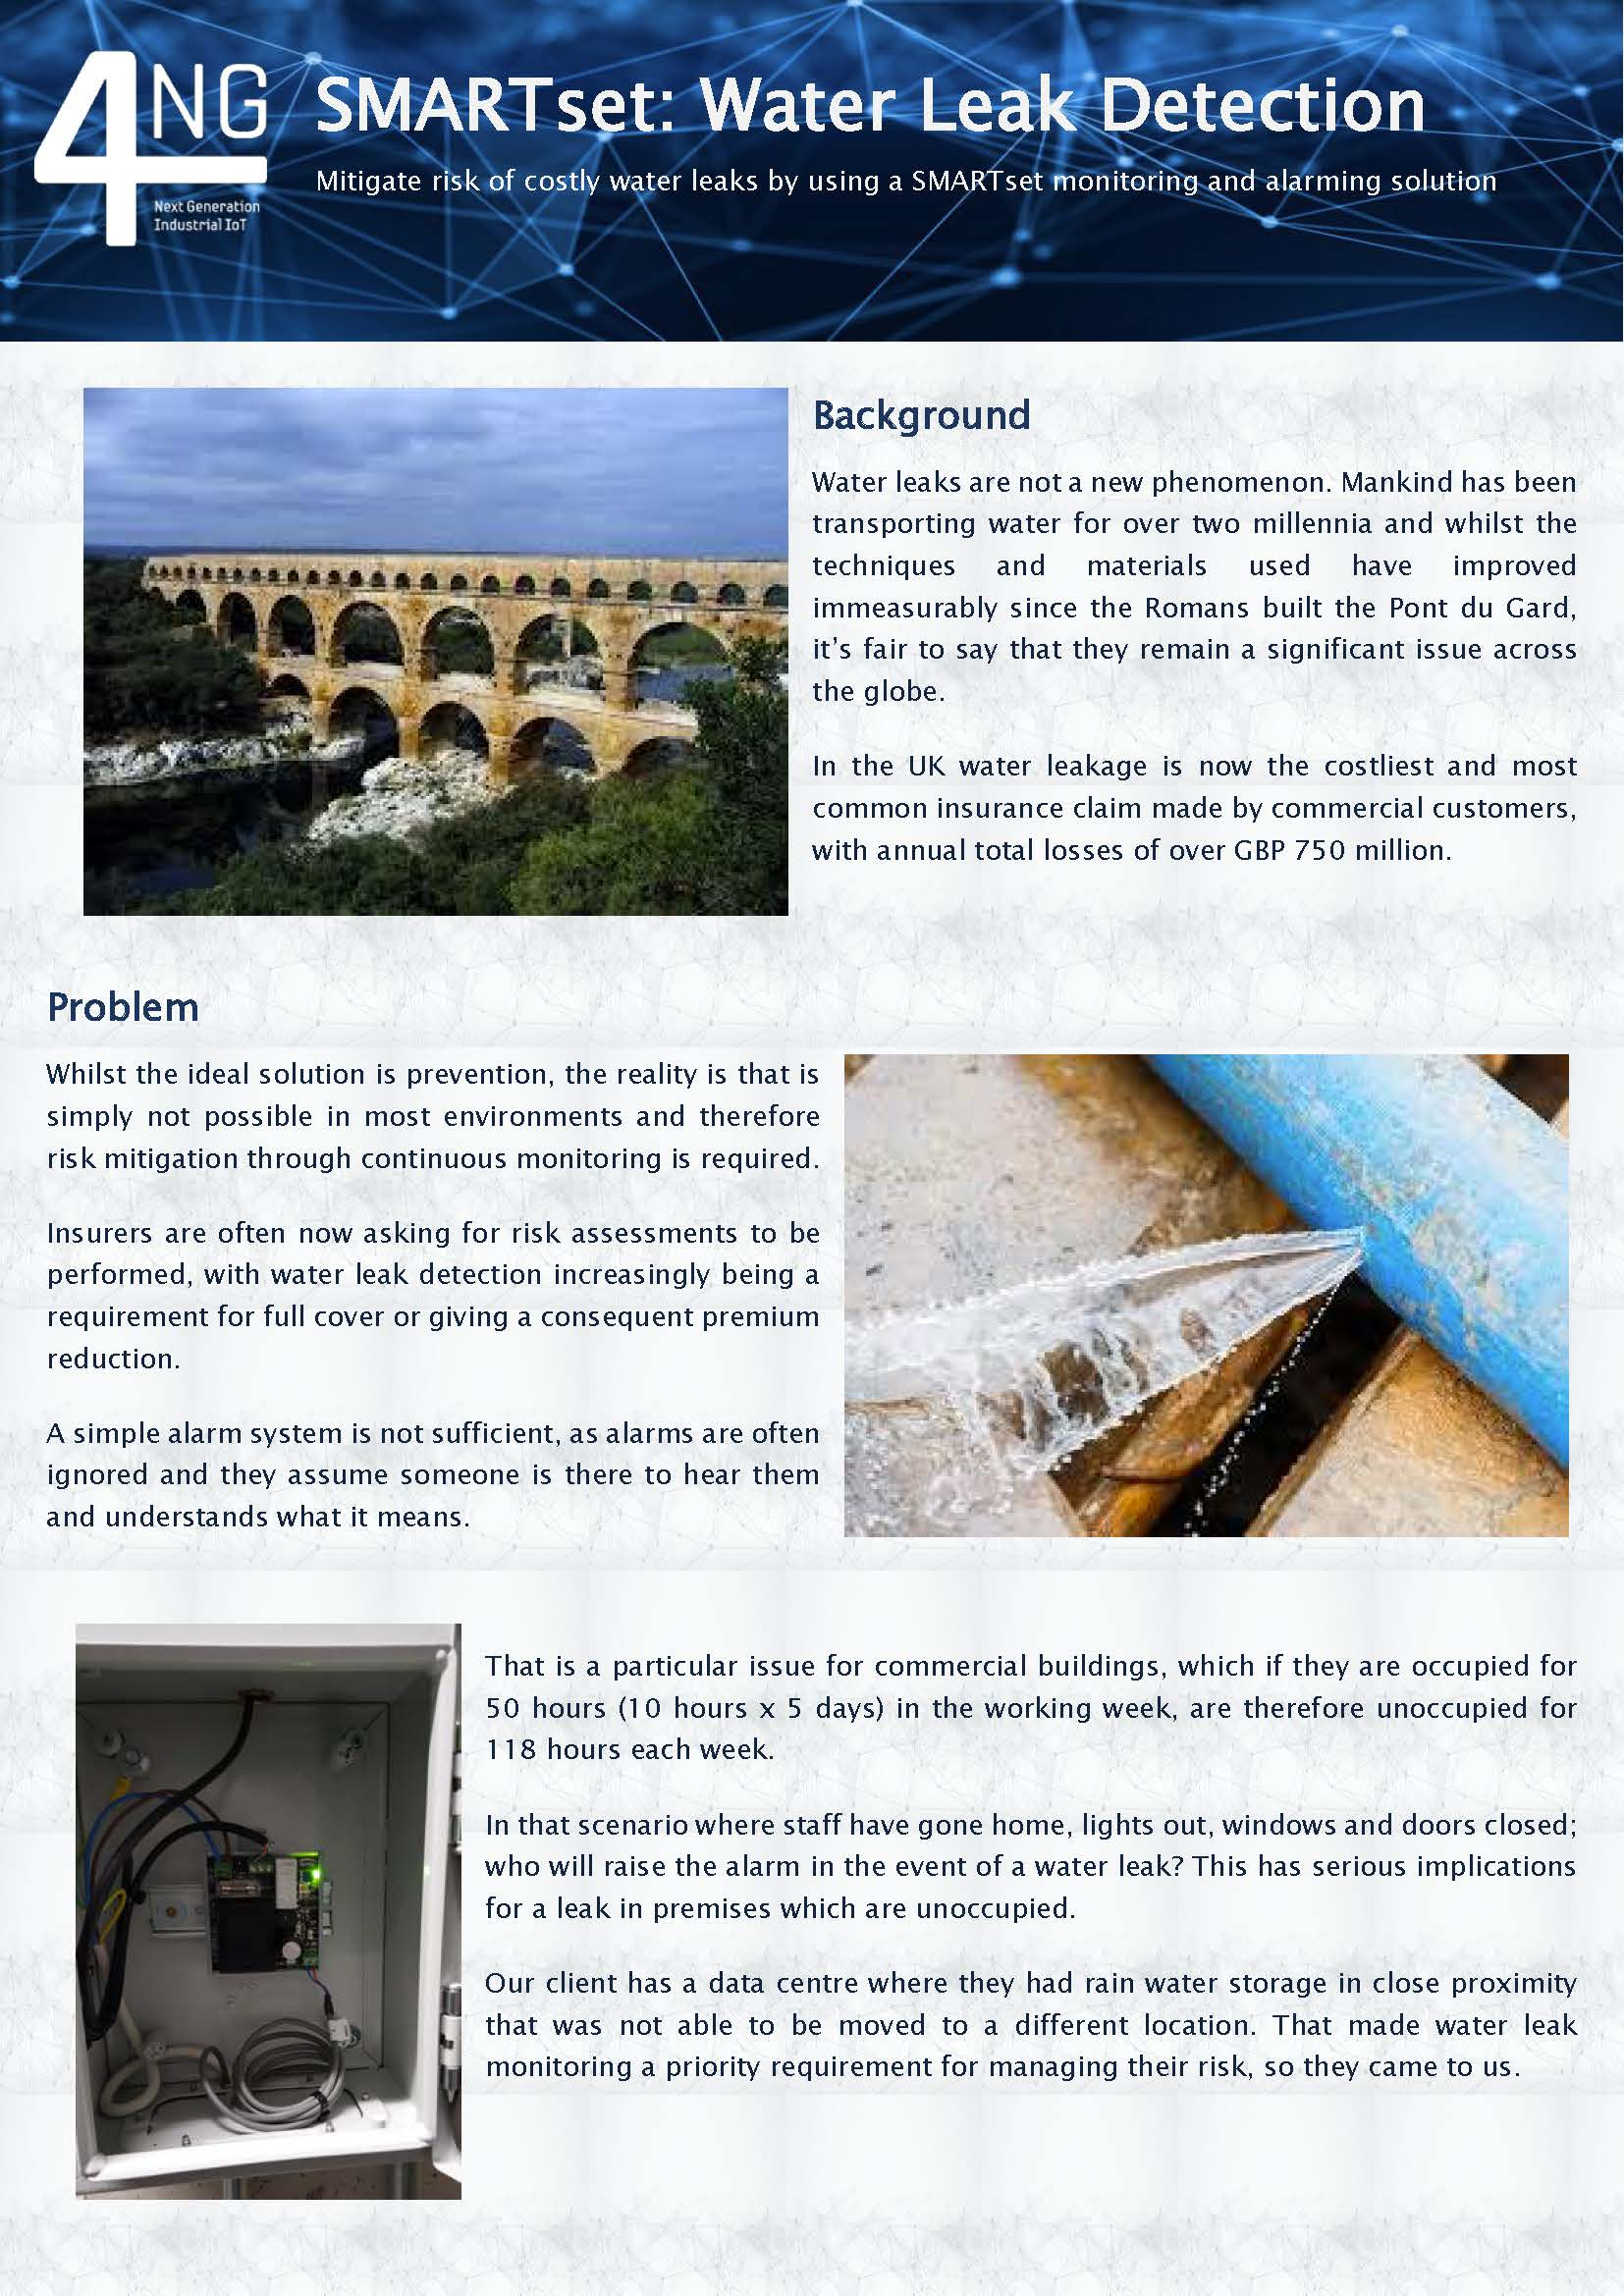 Water Leak Detection Use Case